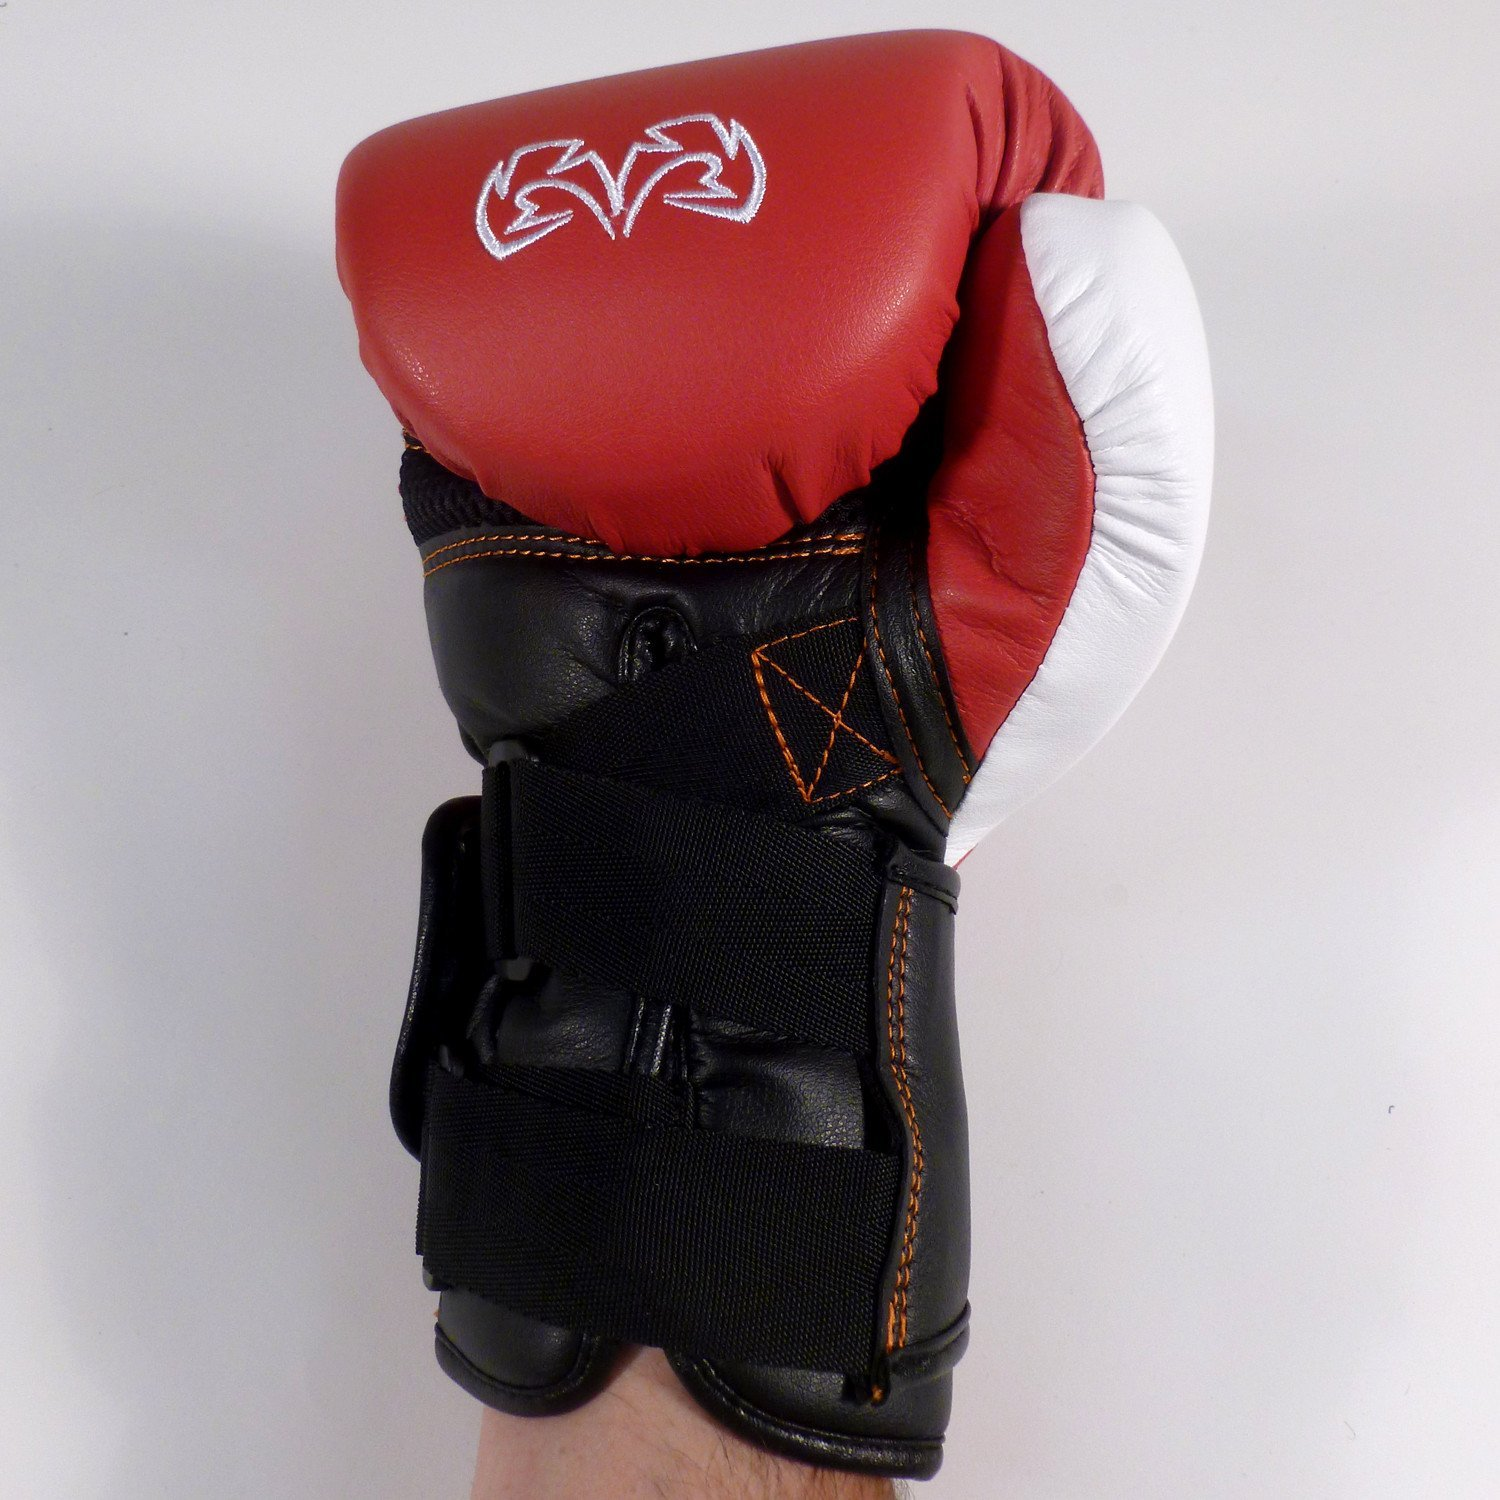 Evo Fitness Boxing Gloves Review: Boxing Gloves For Heavy Bag